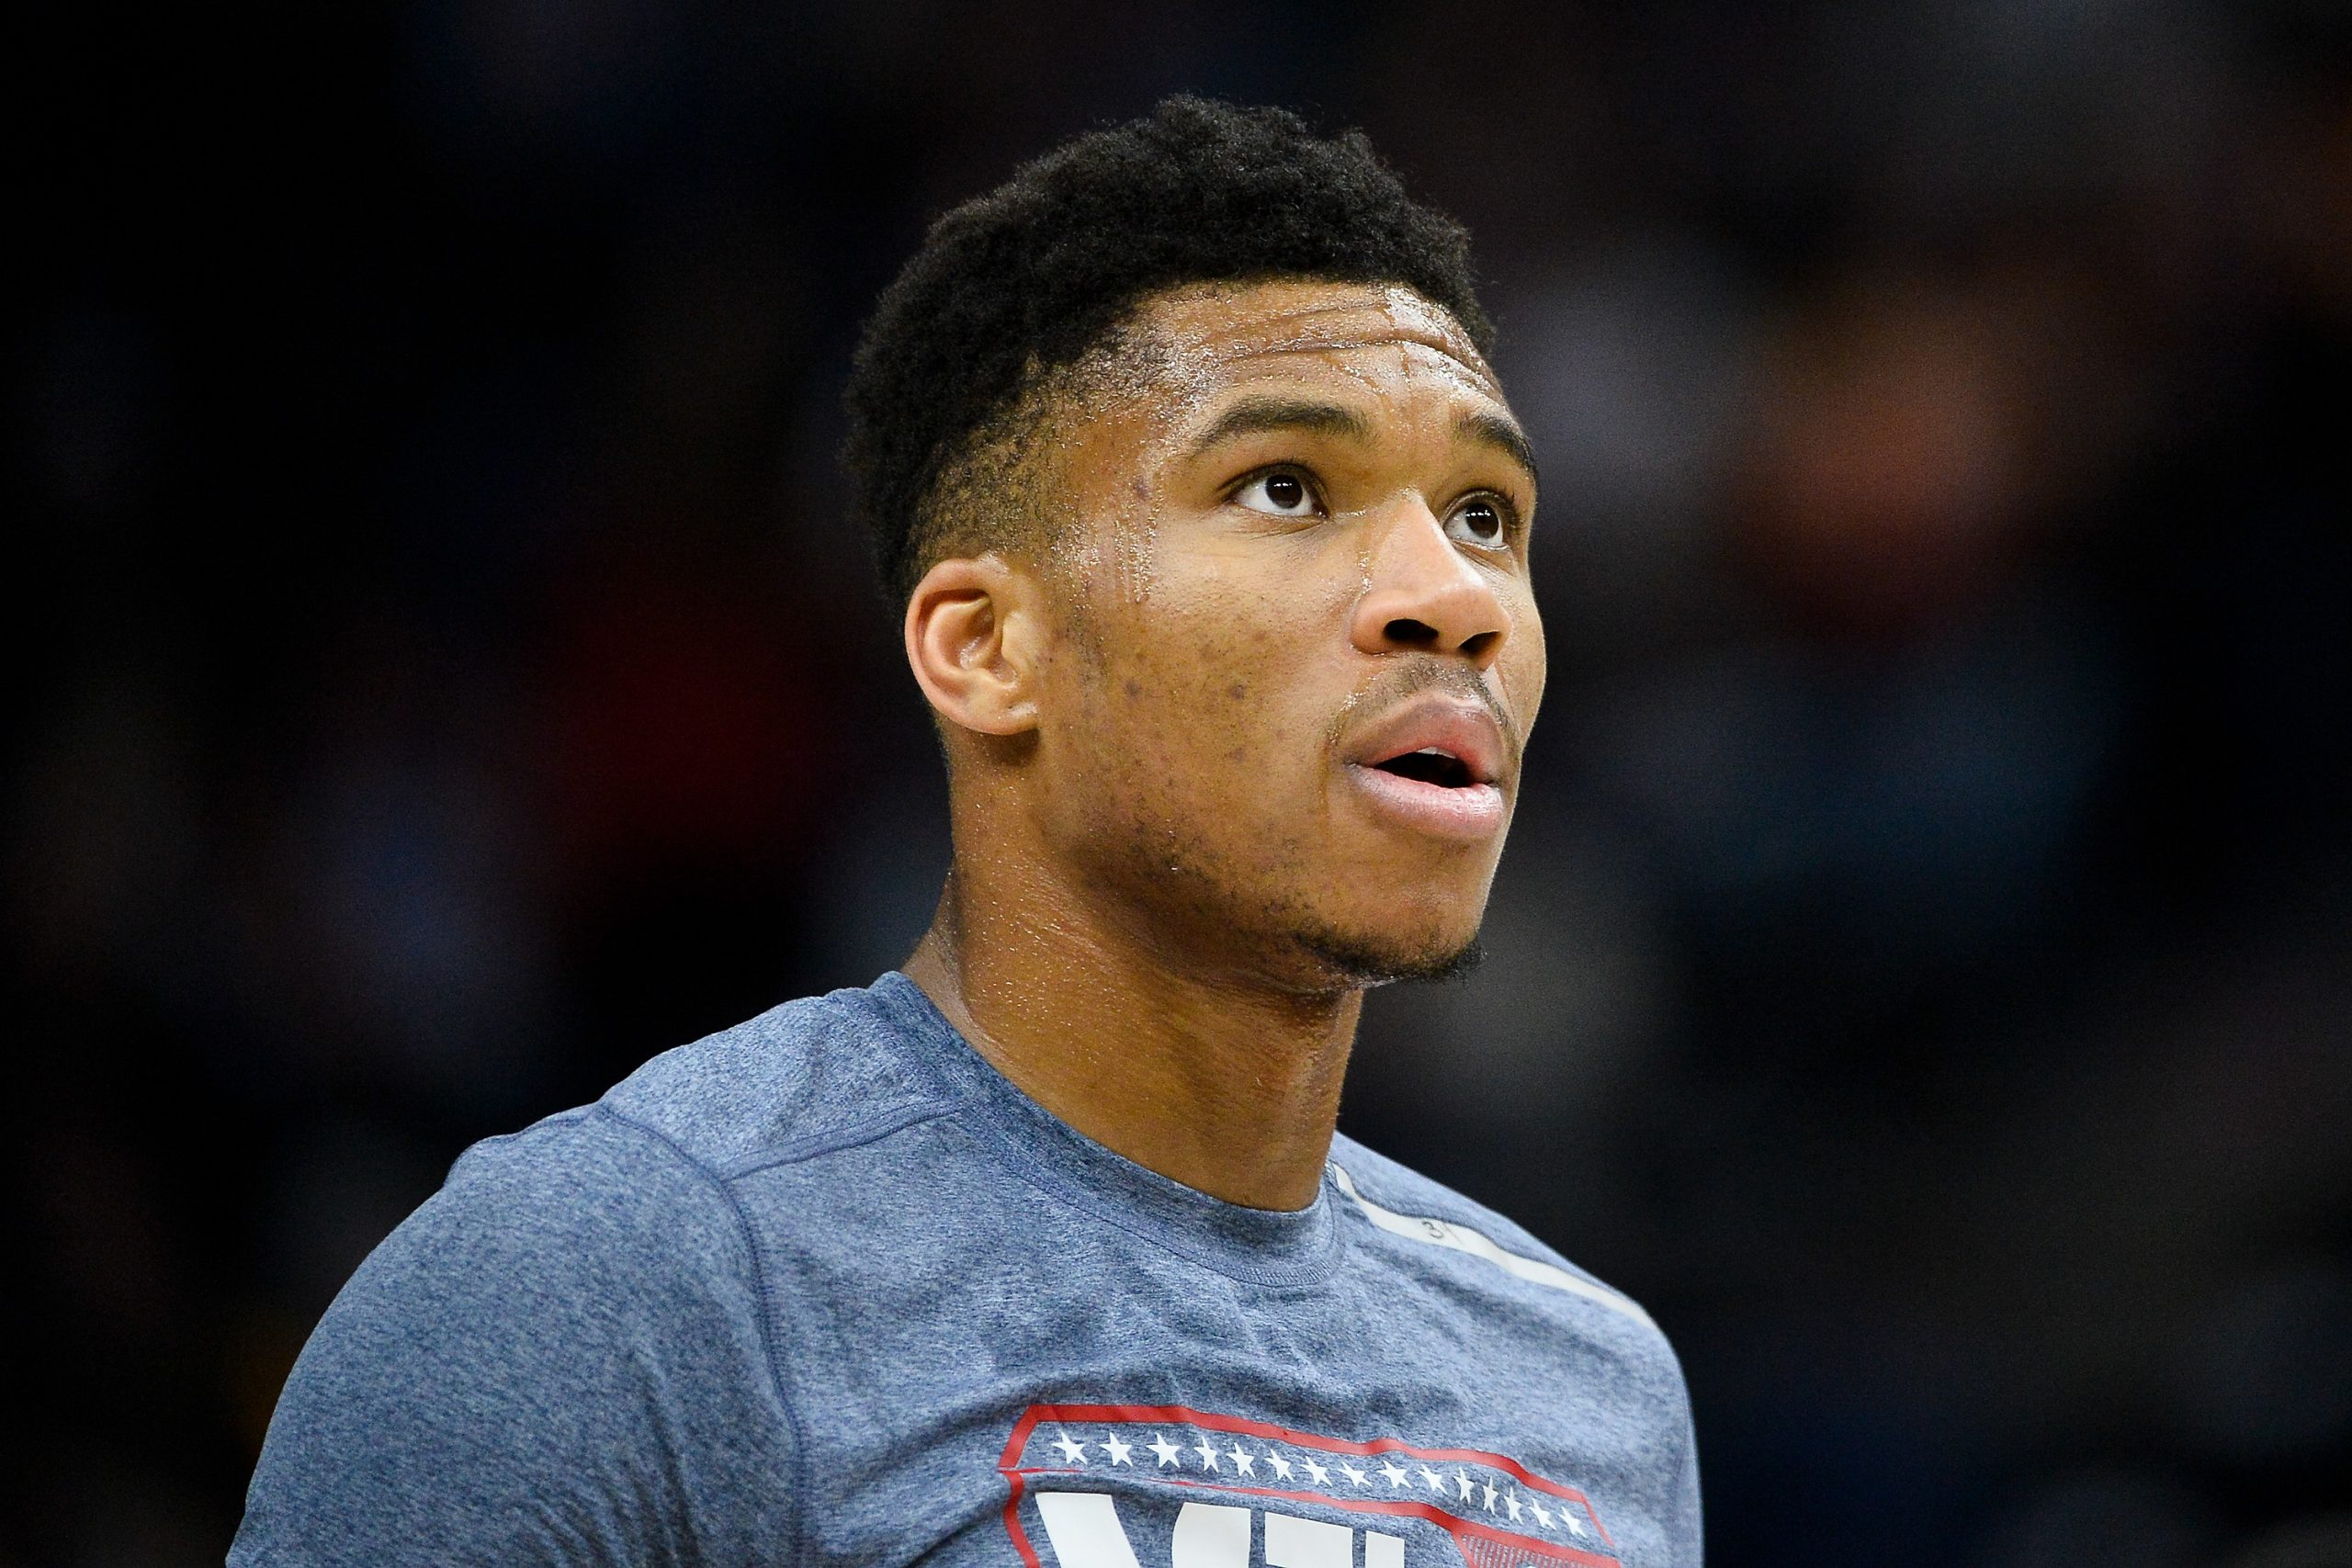 How Good Is Alex Antetokounmpo? Giannis Said He Could Be the Best of the Brothers - Sportscasting